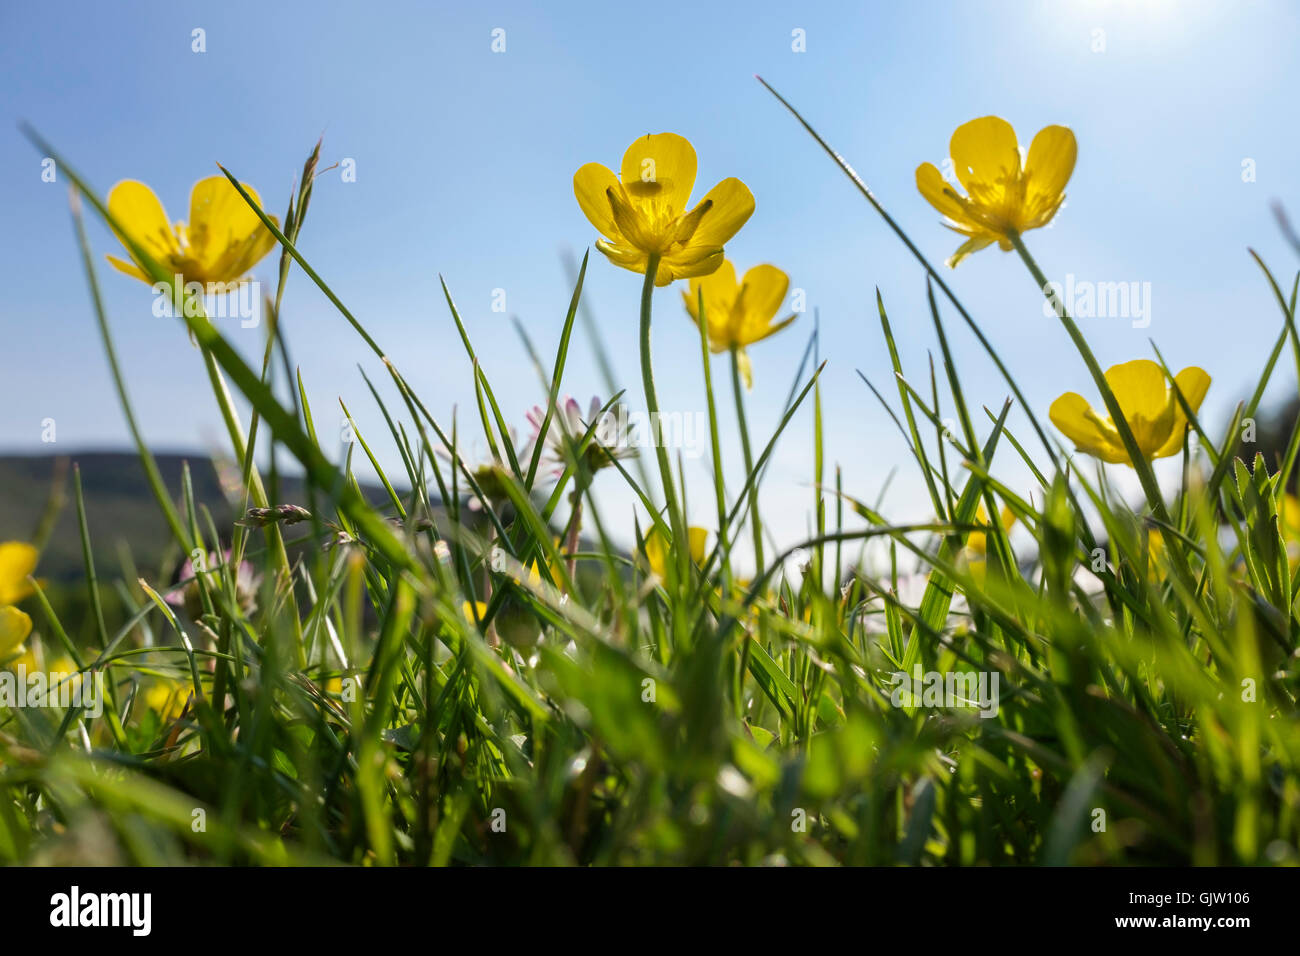 Worm's-eye view of yellow Meadow Buttercups (Ranunculus acris) flowers growing in lawn grass backlit by sunlight - Stock Image